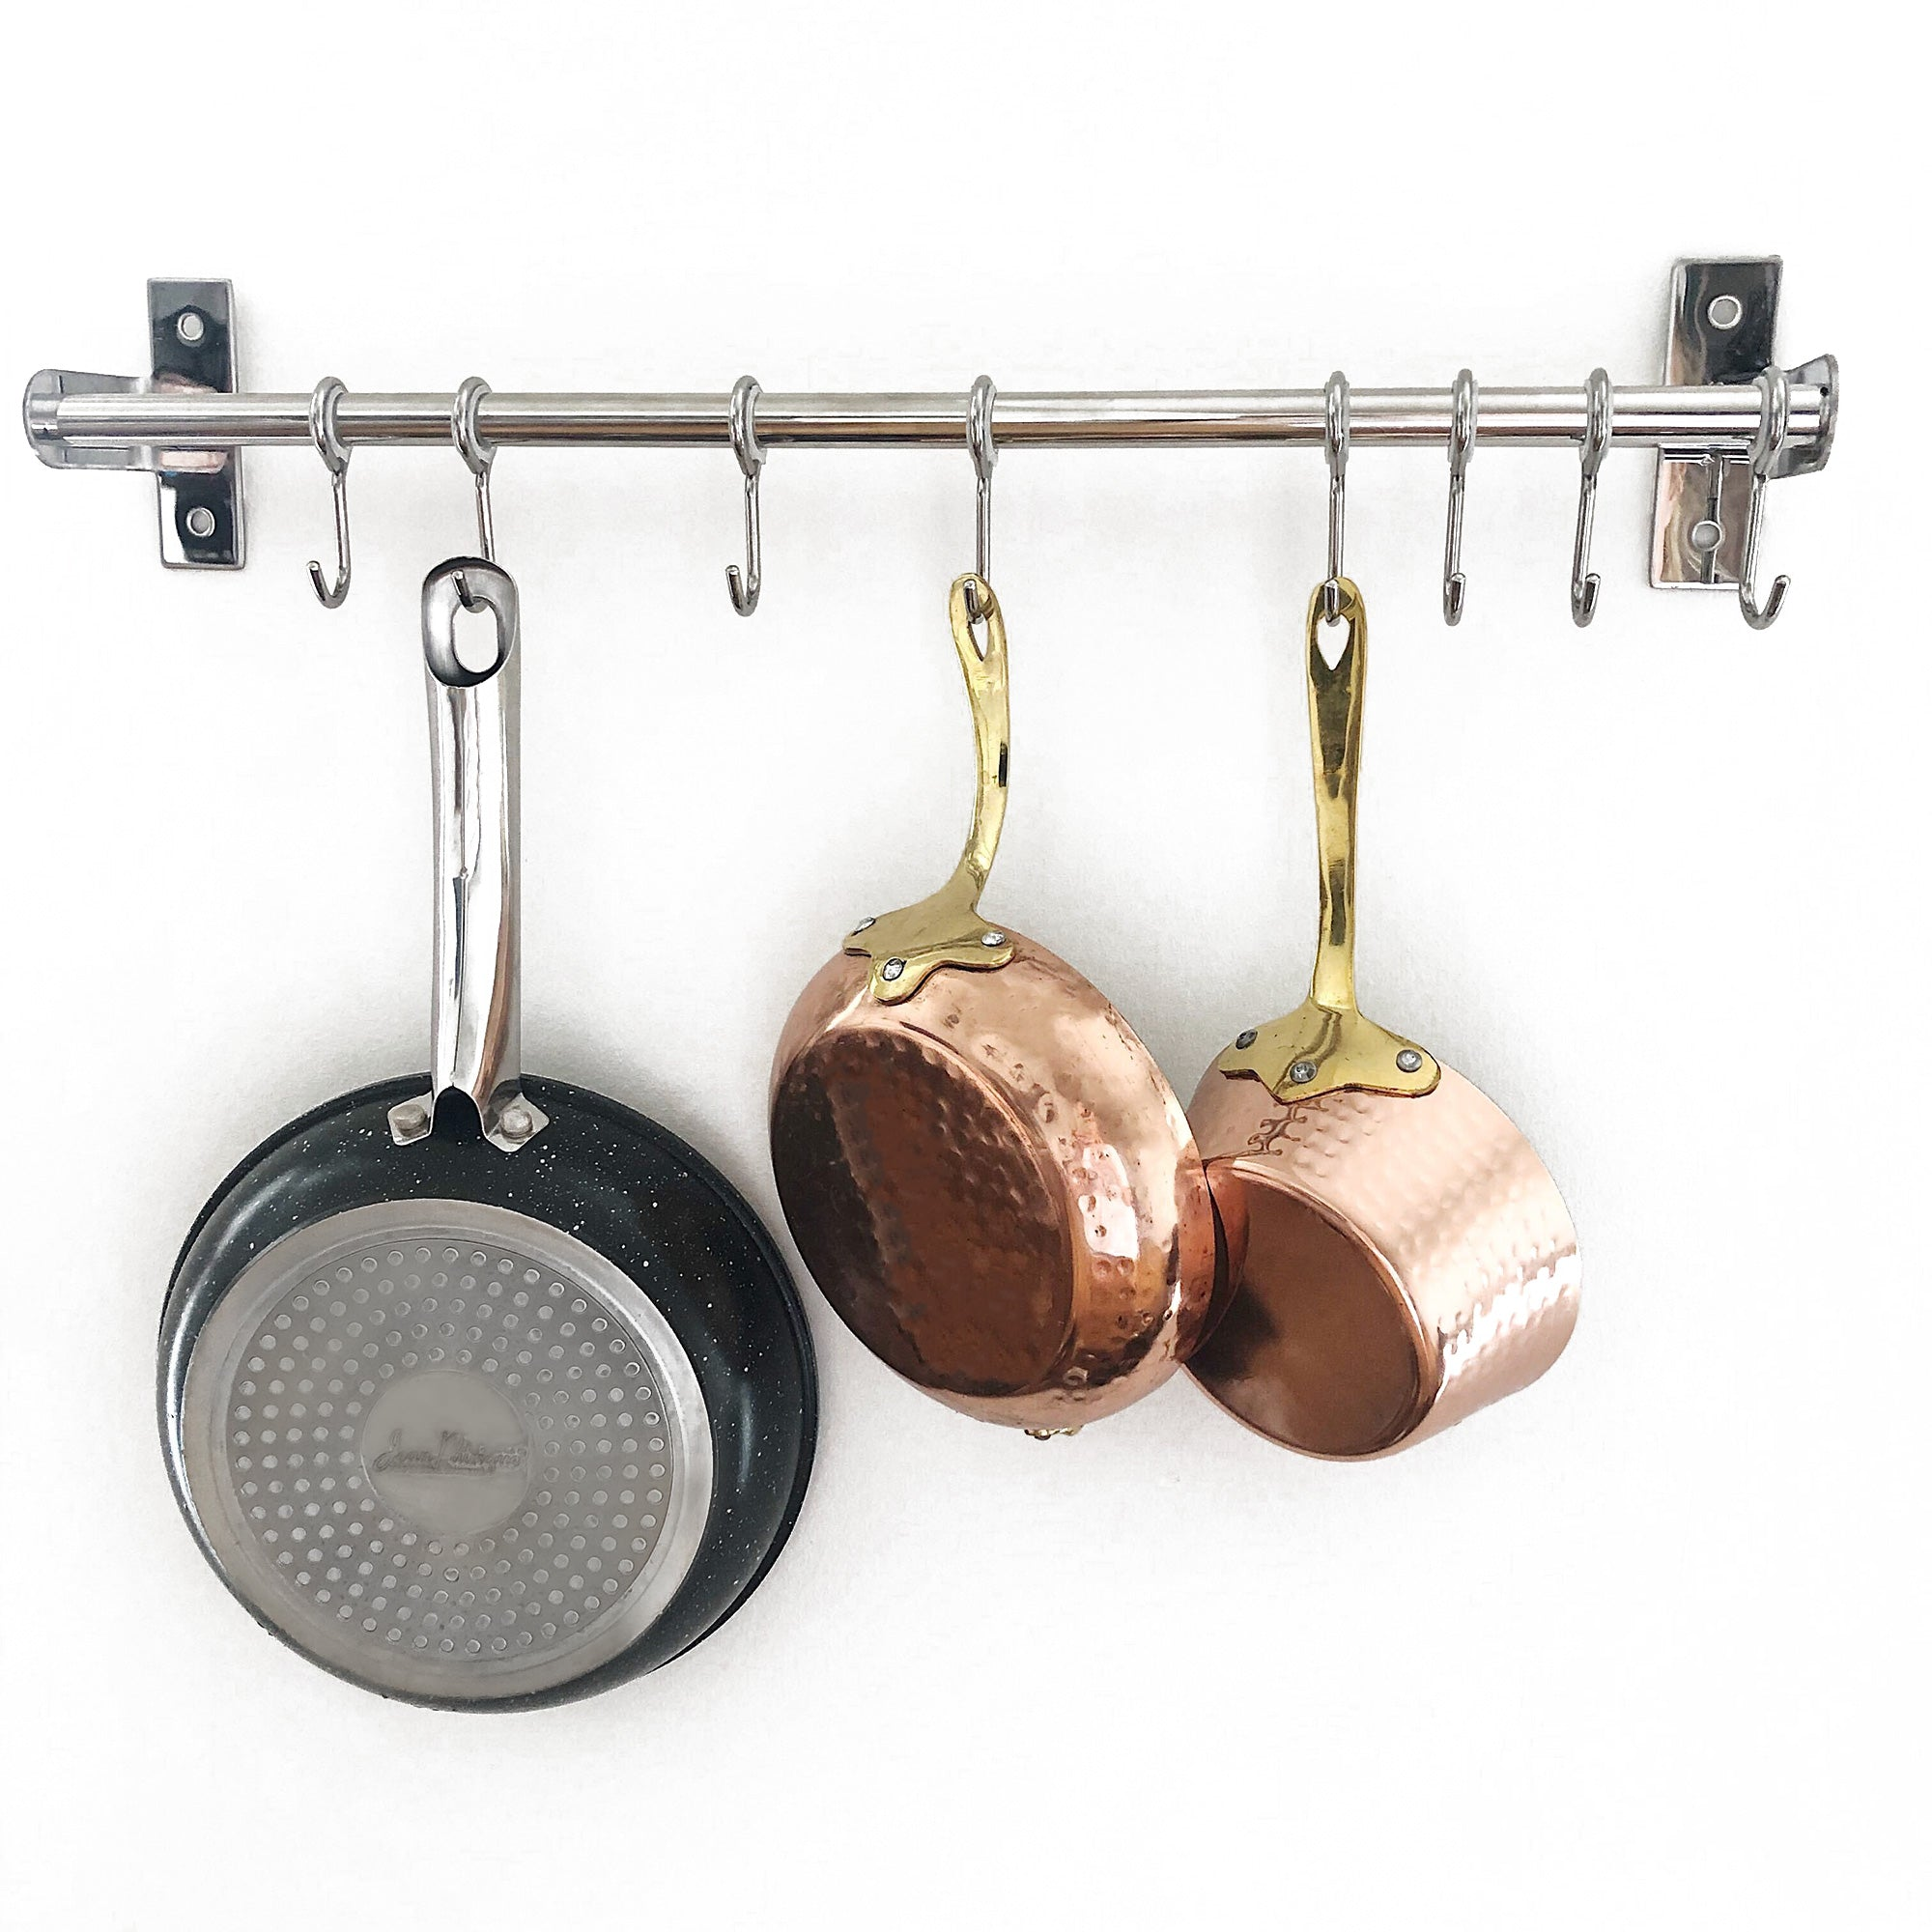 Stainless Steel Hanging Rack - 50cm